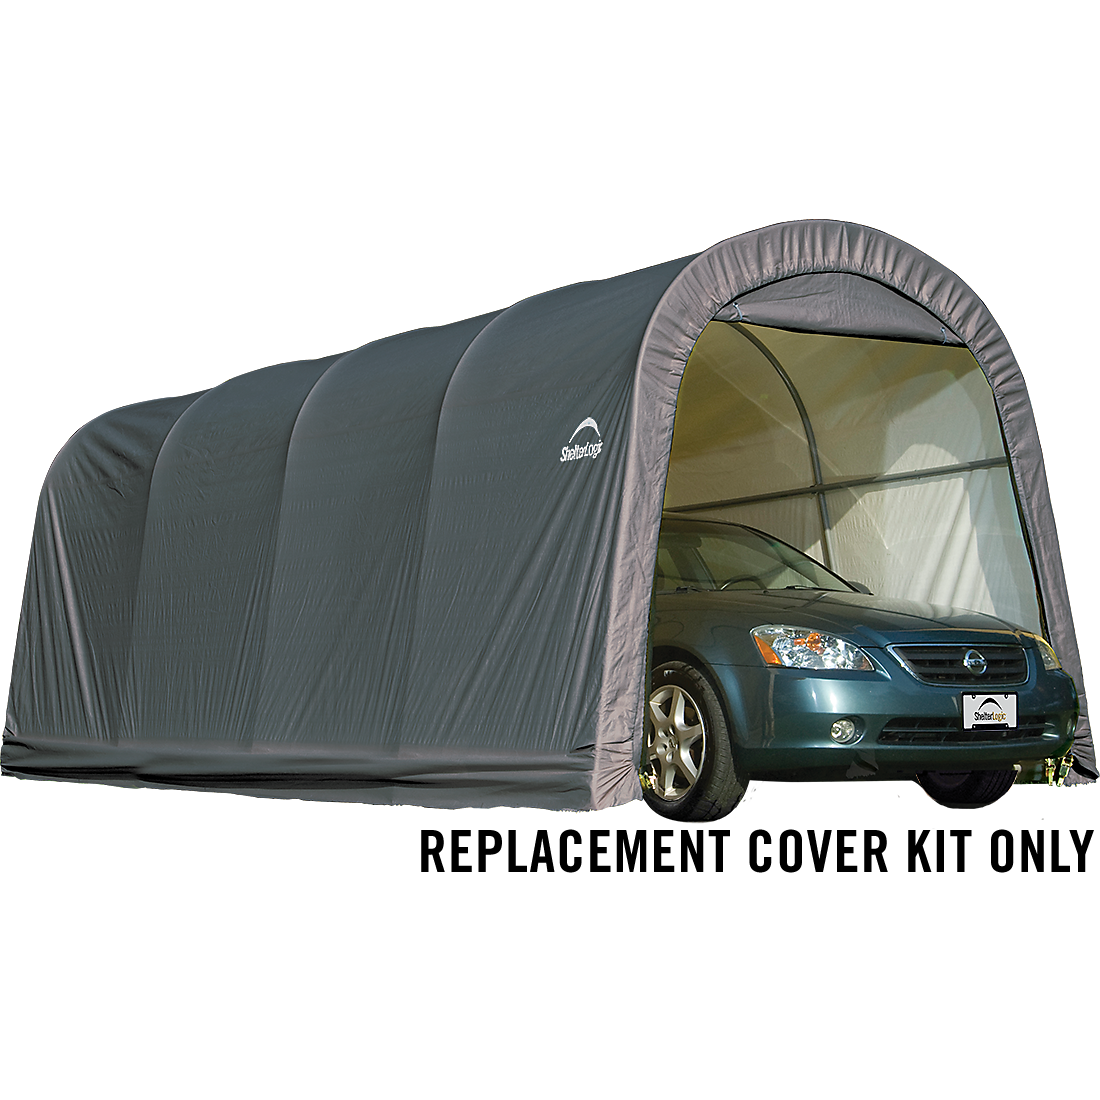 Replacement Tarps Round Top Shelters : Replacement cover kit for the autoshelter roundtop